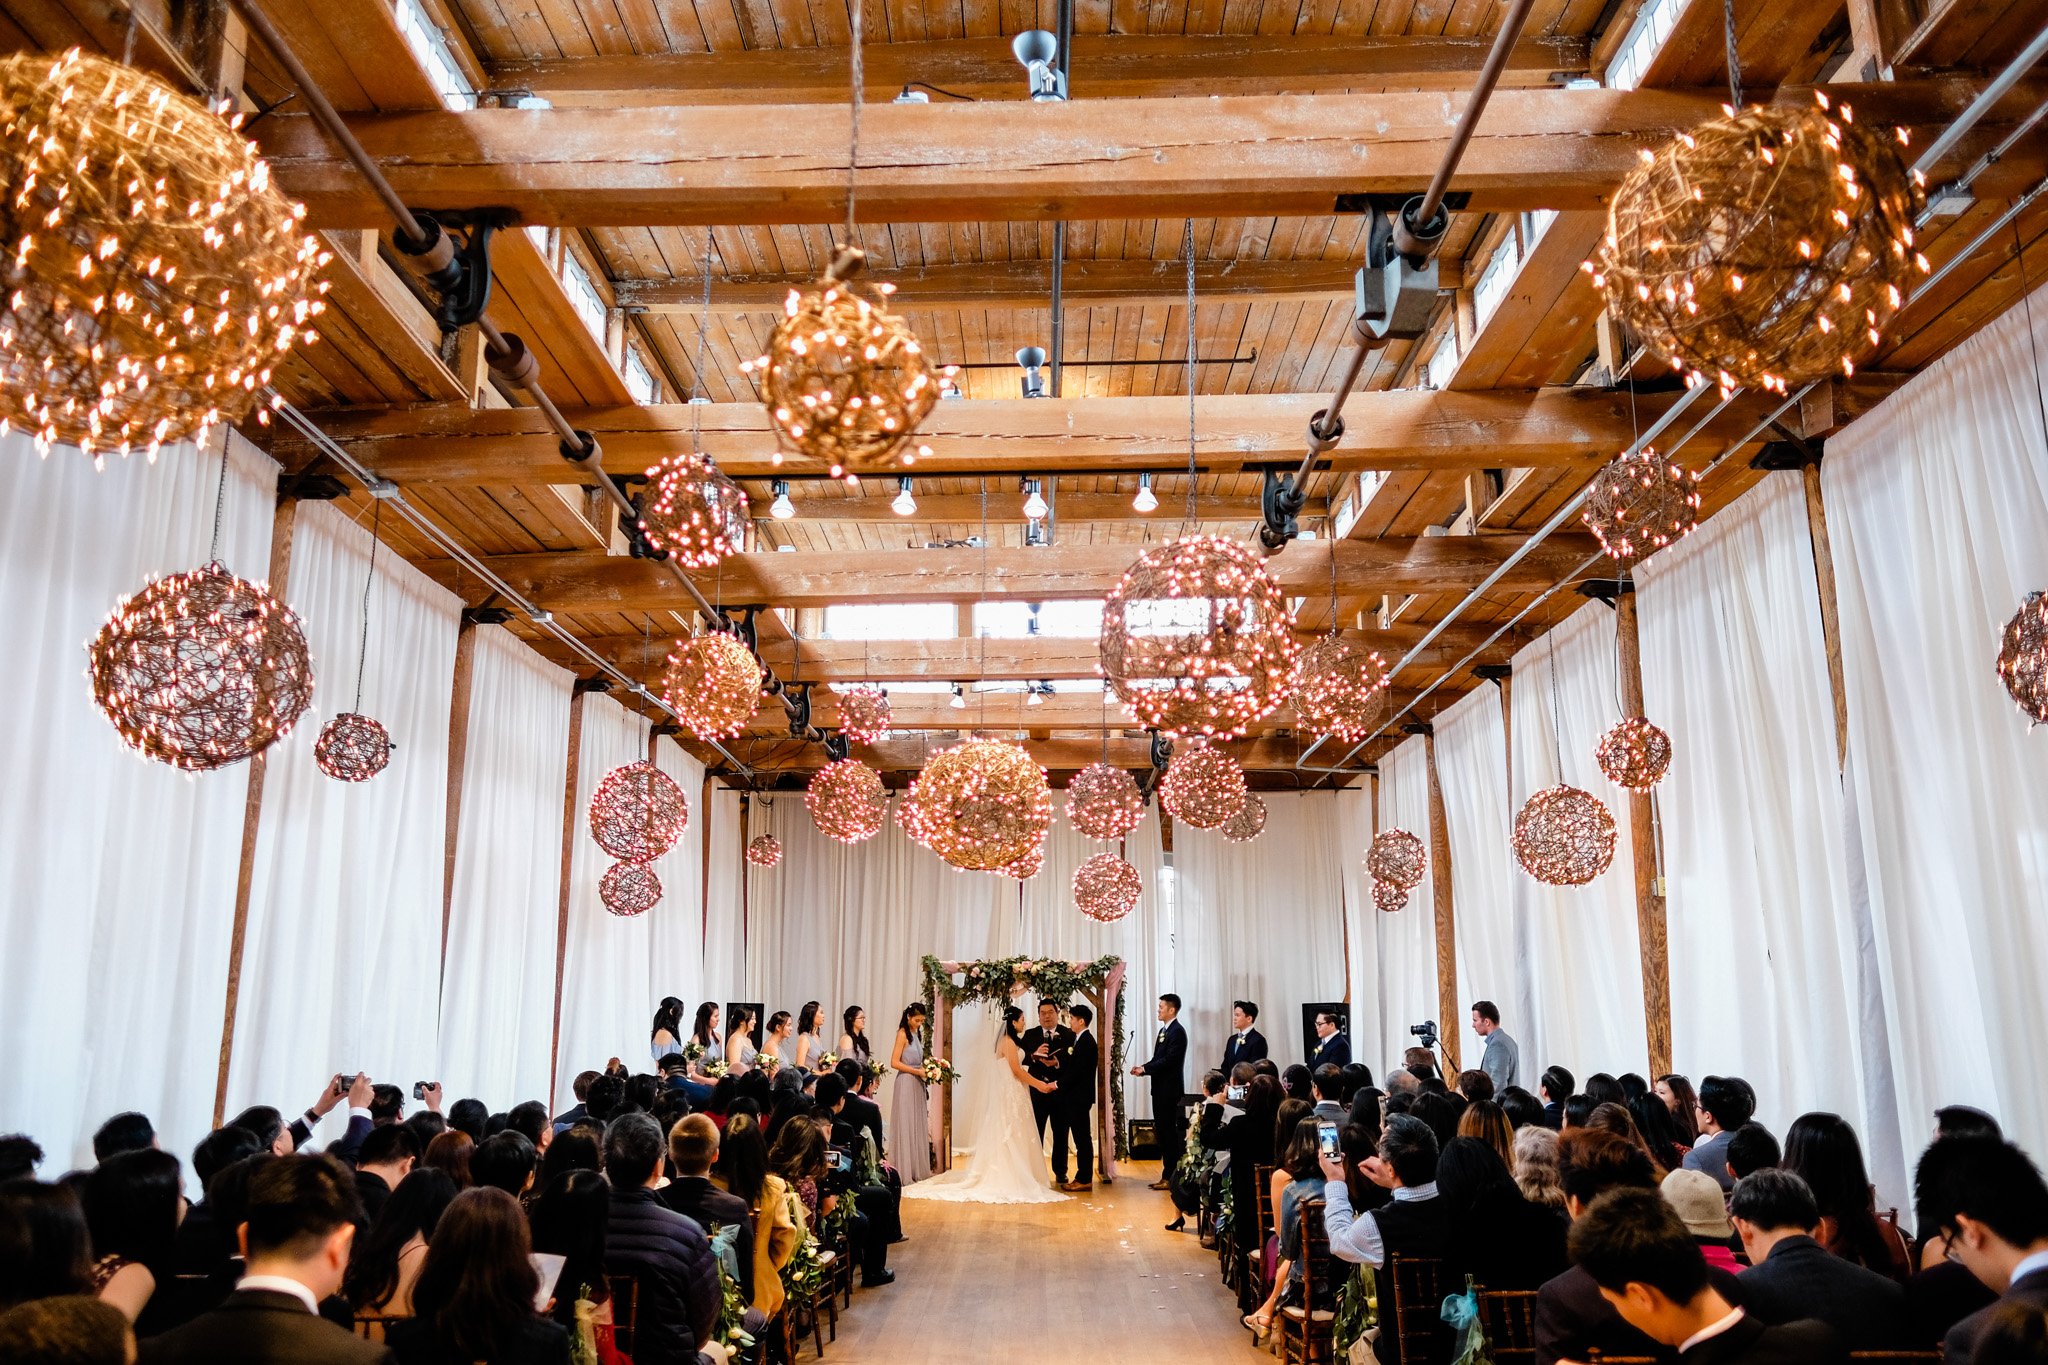 Romantic wedding ceremony at the Cotton Room | Durham Wedding Photographer | By G. Lin Photography